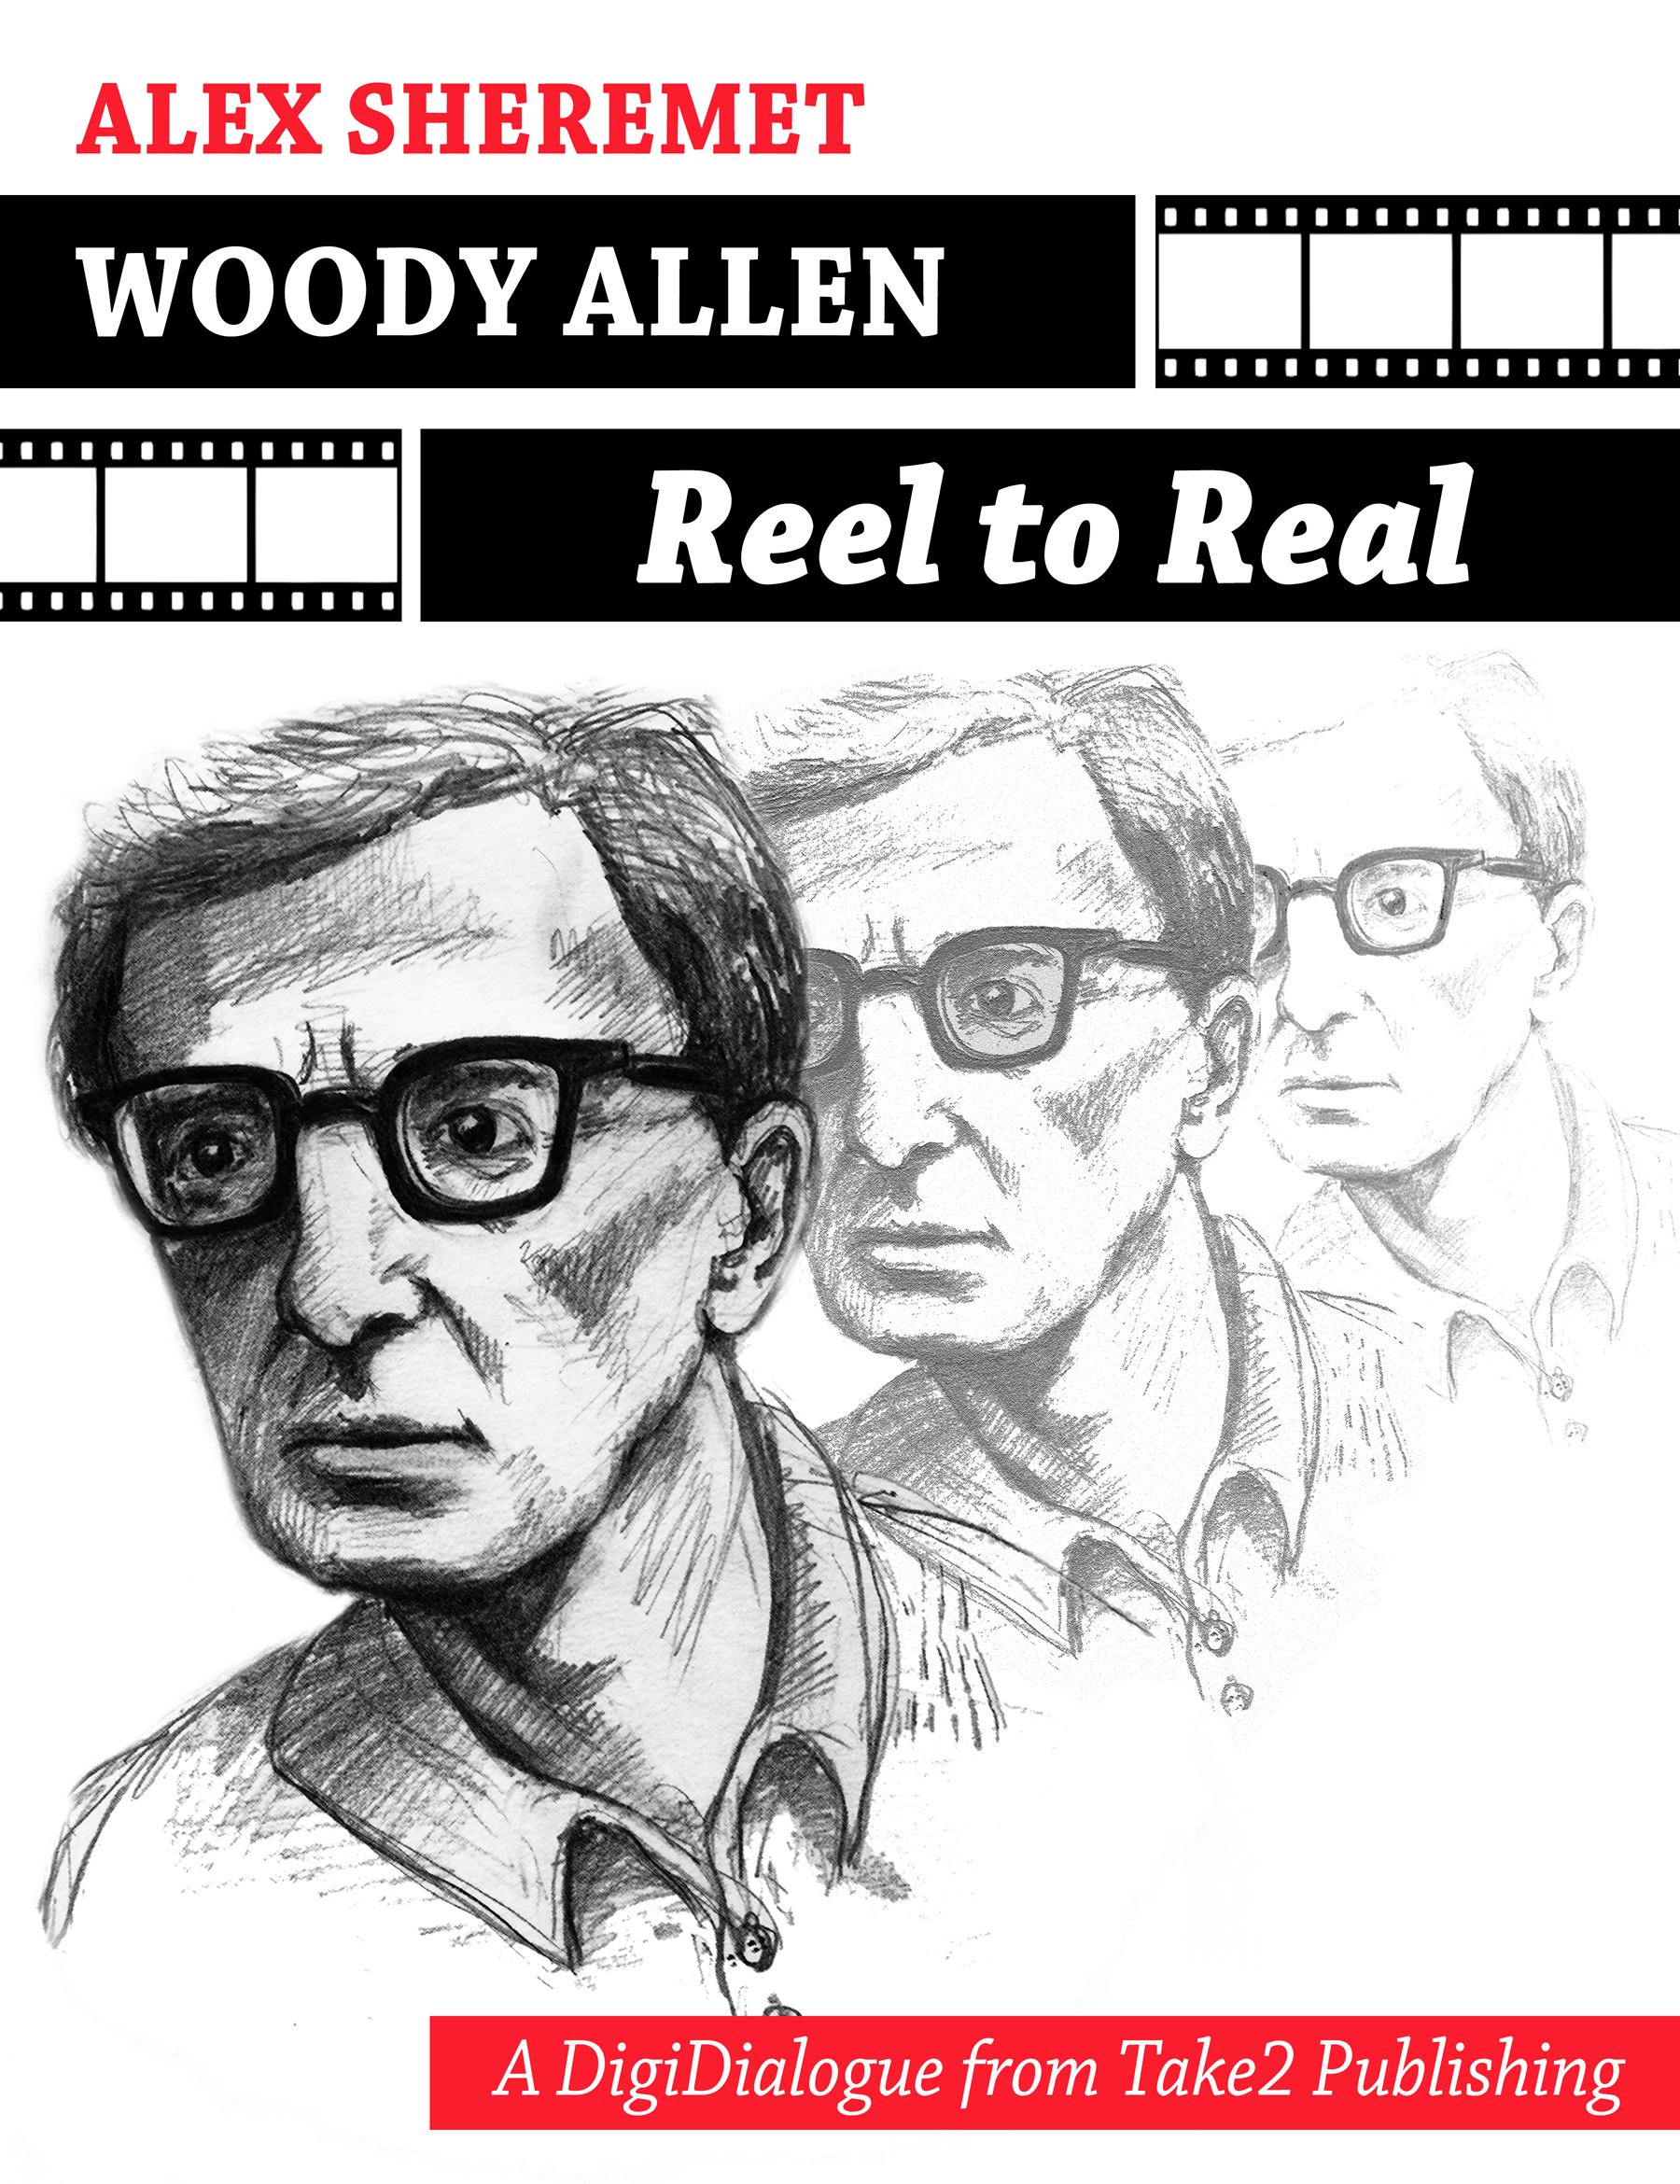 Get Reel to Real with ...